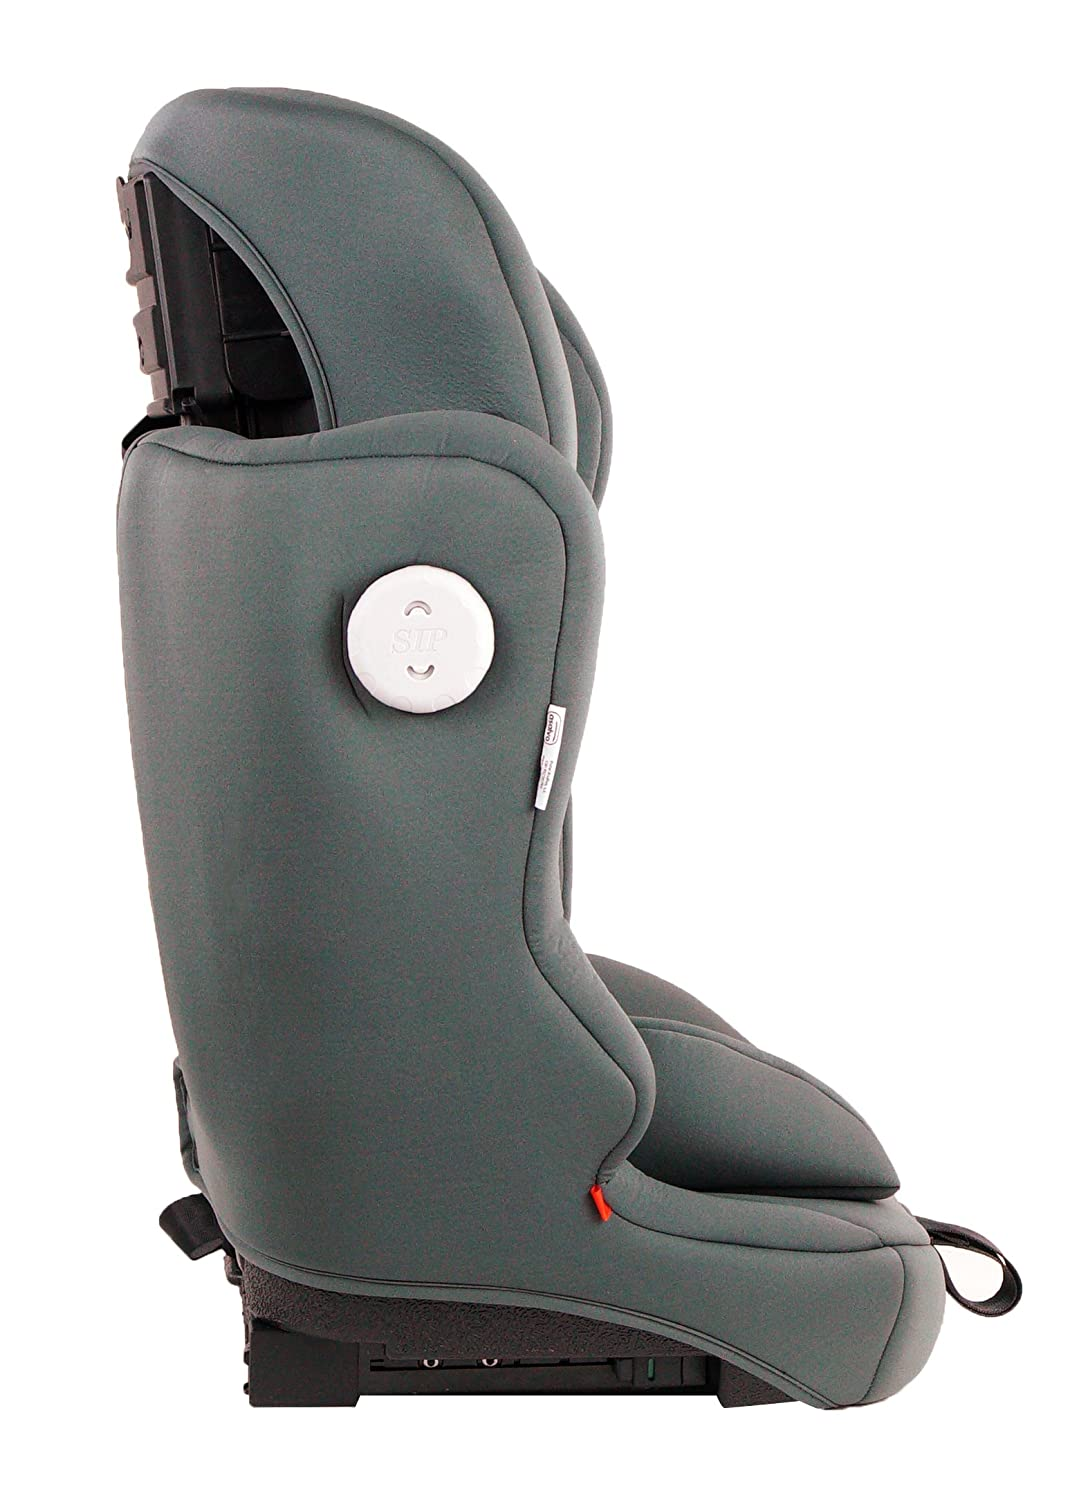 Asalvo - Silla de coche grupo 123 Master Fix, Color gris: Amazon.es: Bebé